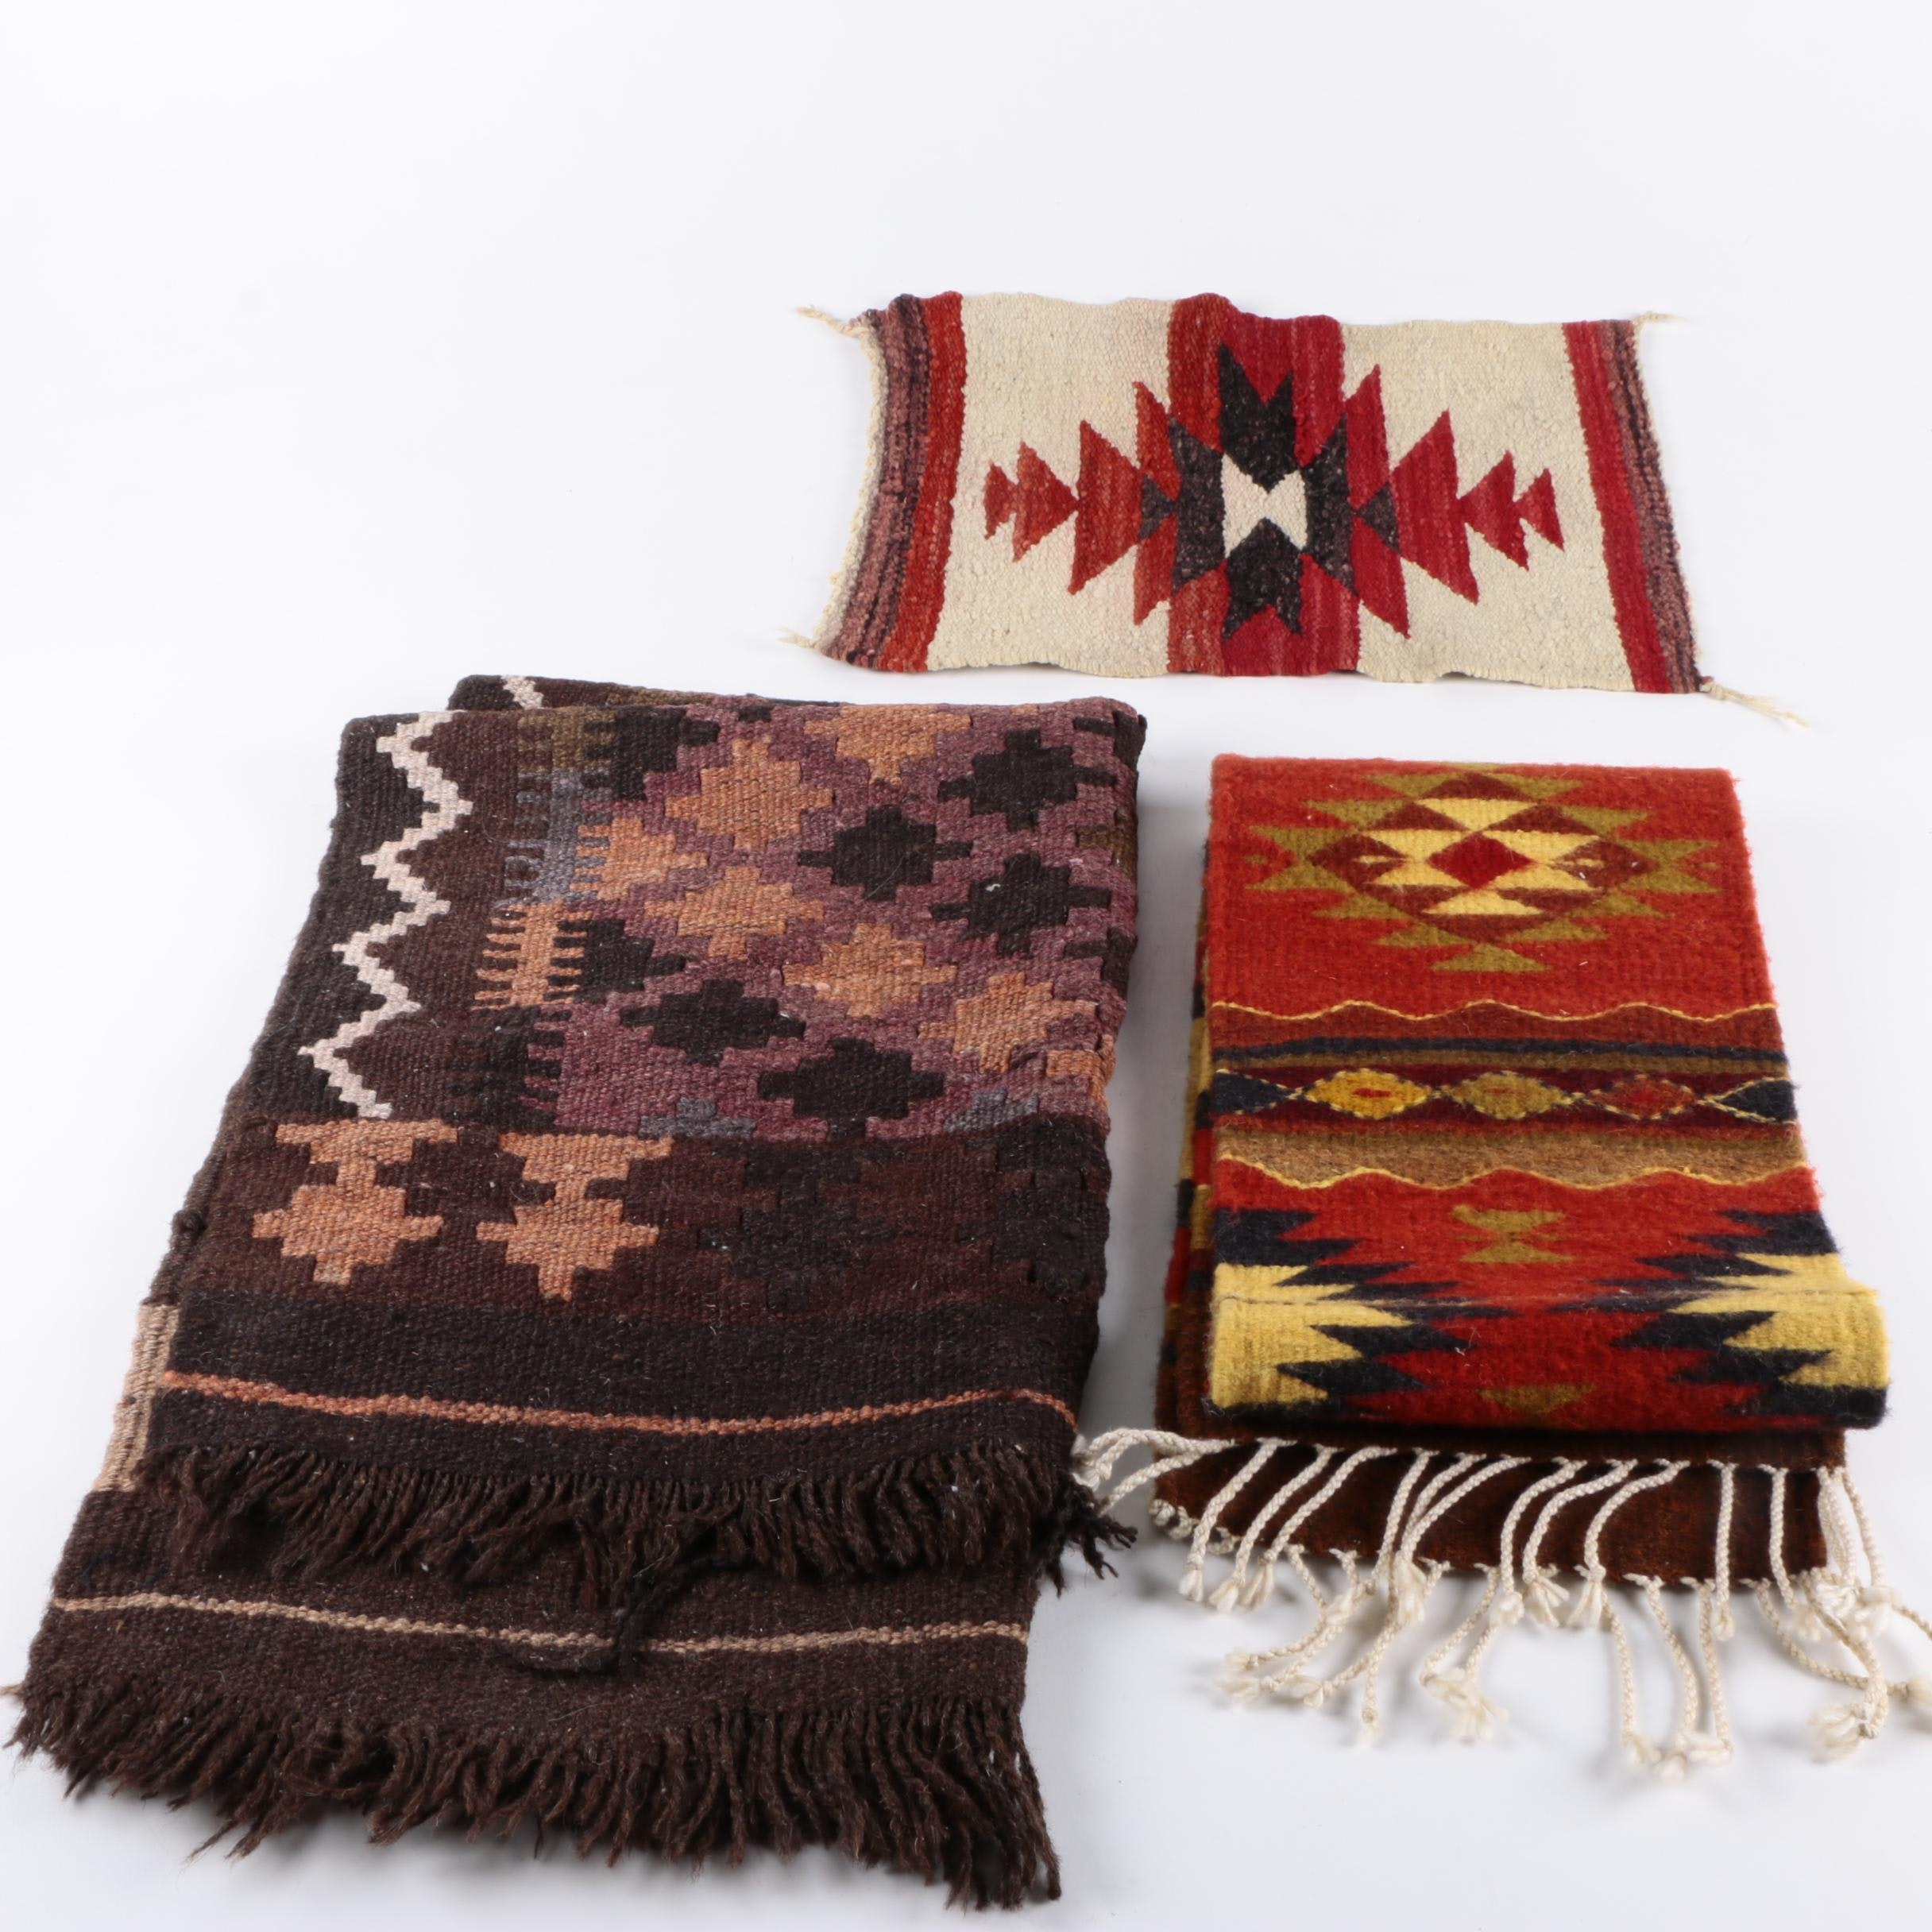 Handwoven Native American Style Textiles and Turkish Kilim Wool Accent Rug